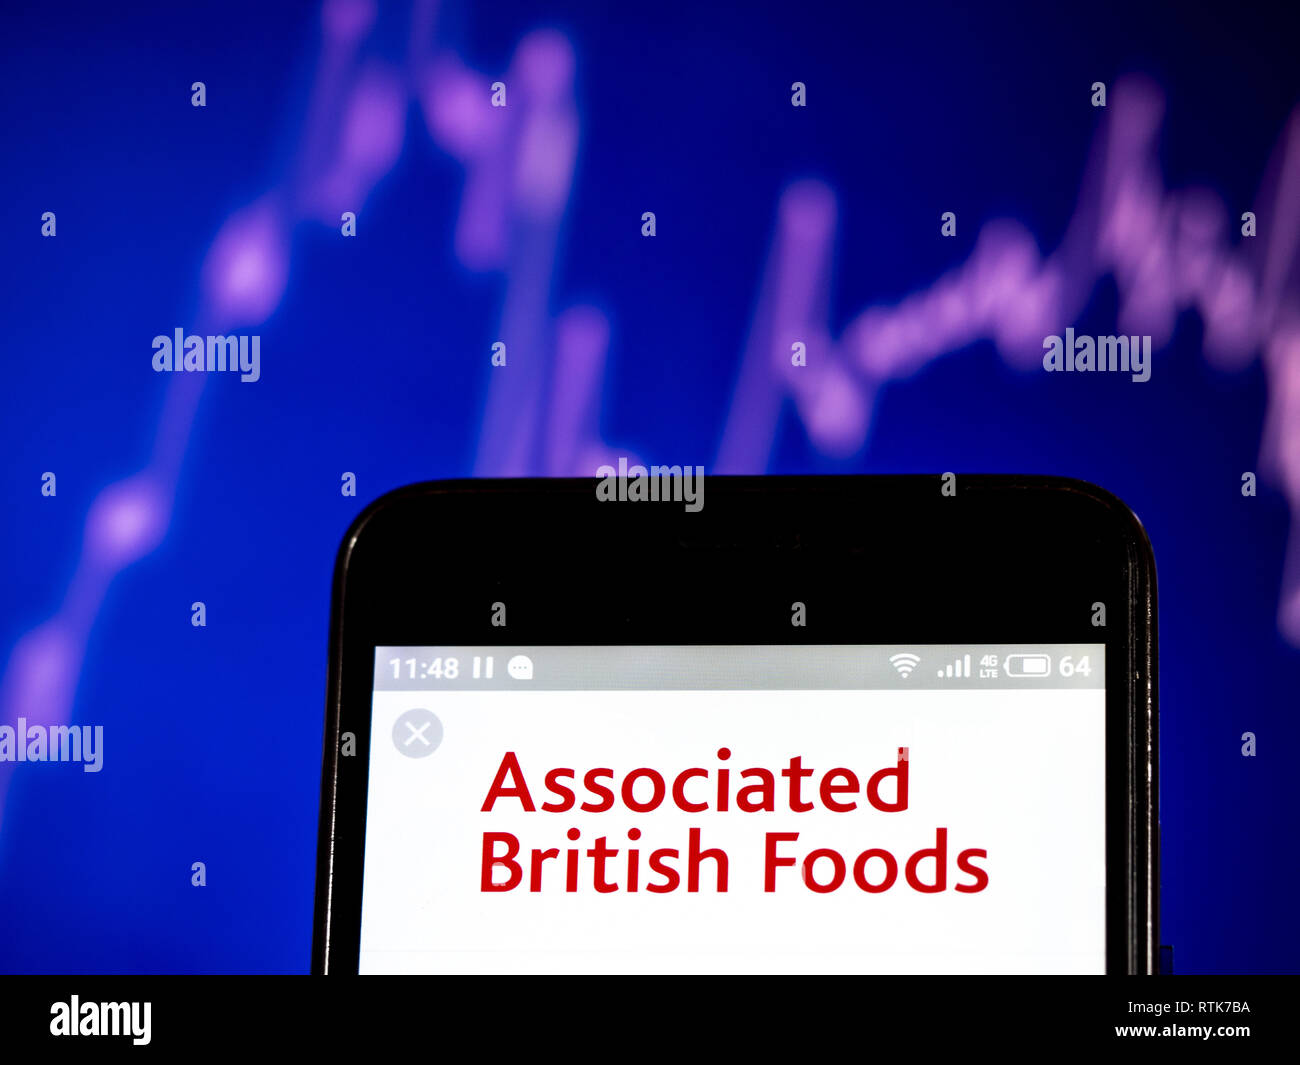 Kiev, Ukraine. 28th Feb, 2019. Associated British Foods plc logo seen displayed on a smart phone. Credit: Igor Golovniov/SOPA Images/ZUMA Wire/Alamy Live News - Stock Image